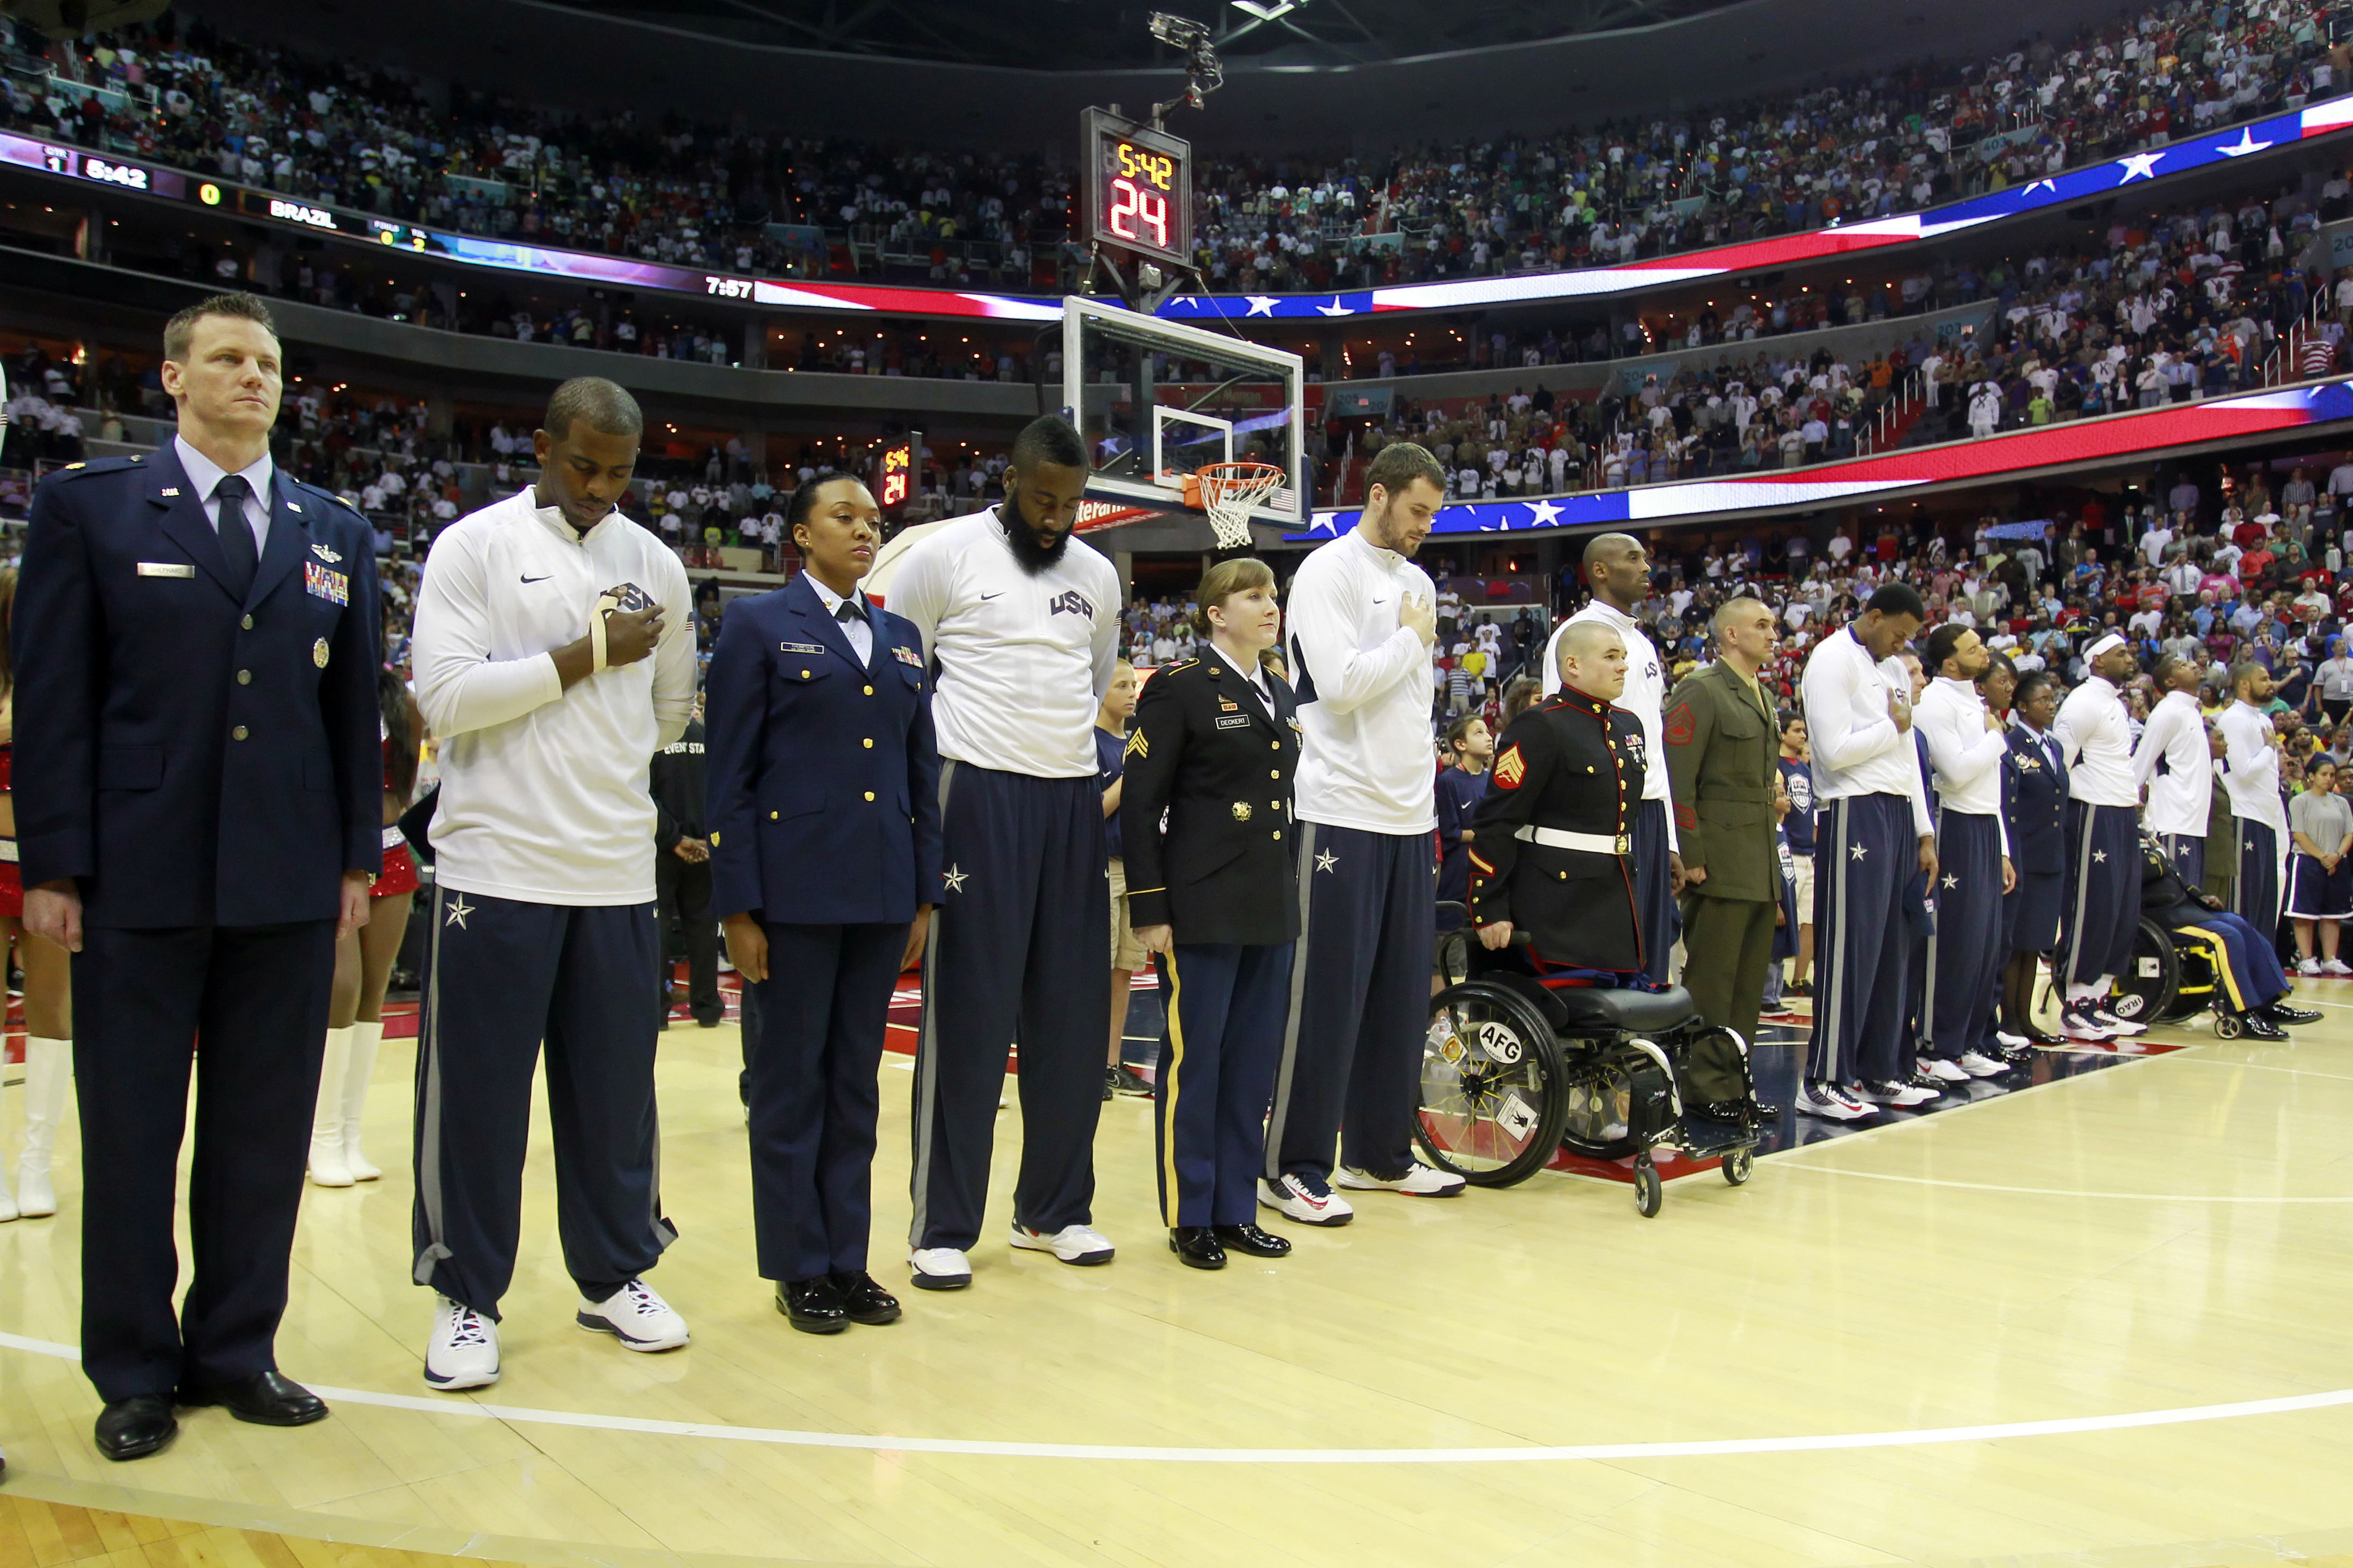 July 16, 2012; Washington, DC, USA; Members of team USA stand with servicemen and servicewomen during the national anthem prior to team USA's game against team Brazil at Verizon Center. Team USA won 80-69. Mandatory Credit: Geoff Burke-US PRESSWIRE